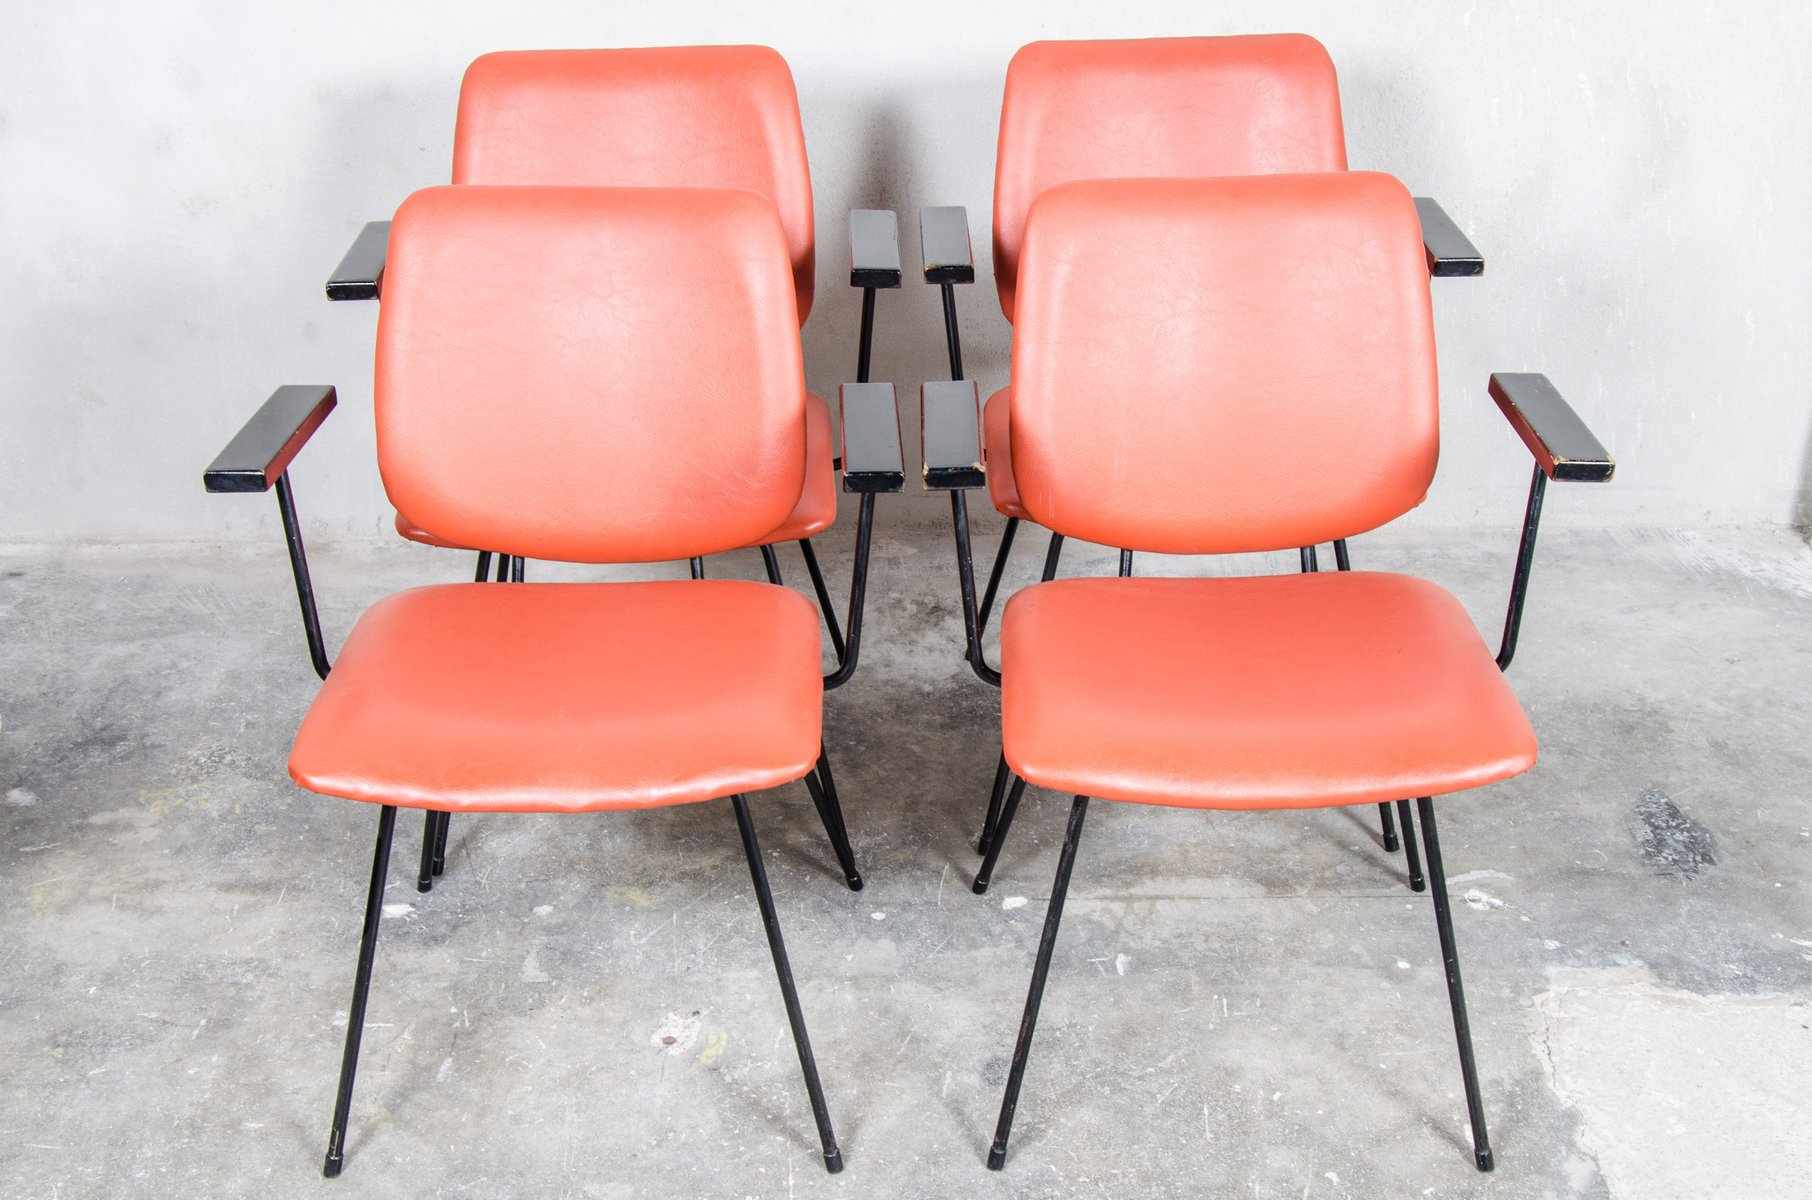 Ordinaire Bright Red Dining Set By W.H Gispen For Kembo, 1950s, Set Of 4